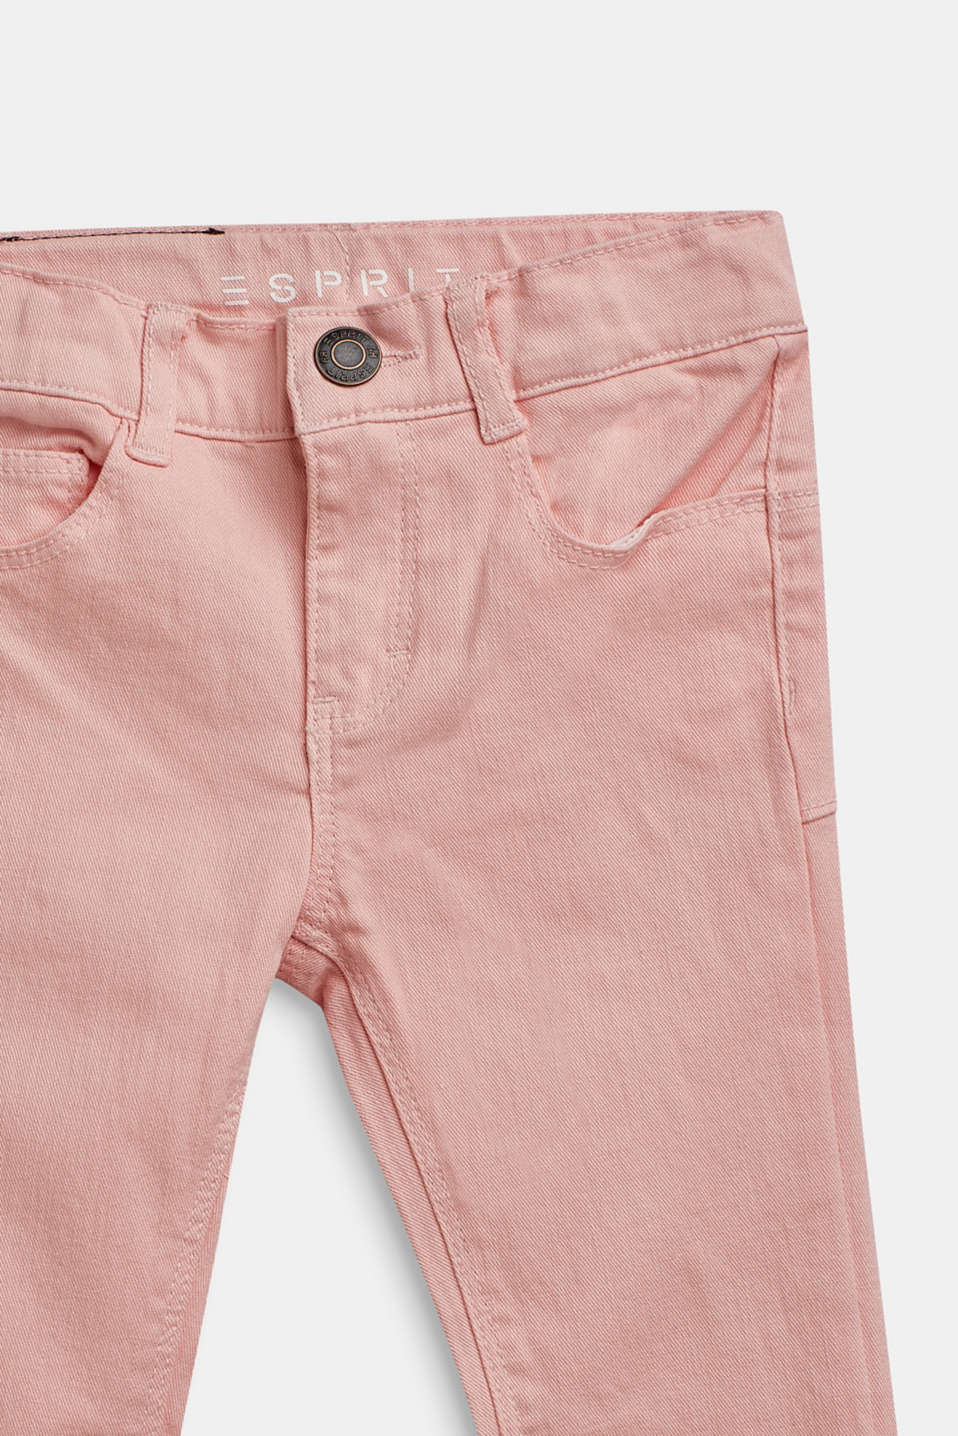 Stretch jeans with an adjustable waist, TINTED ROSE, detail image number 2